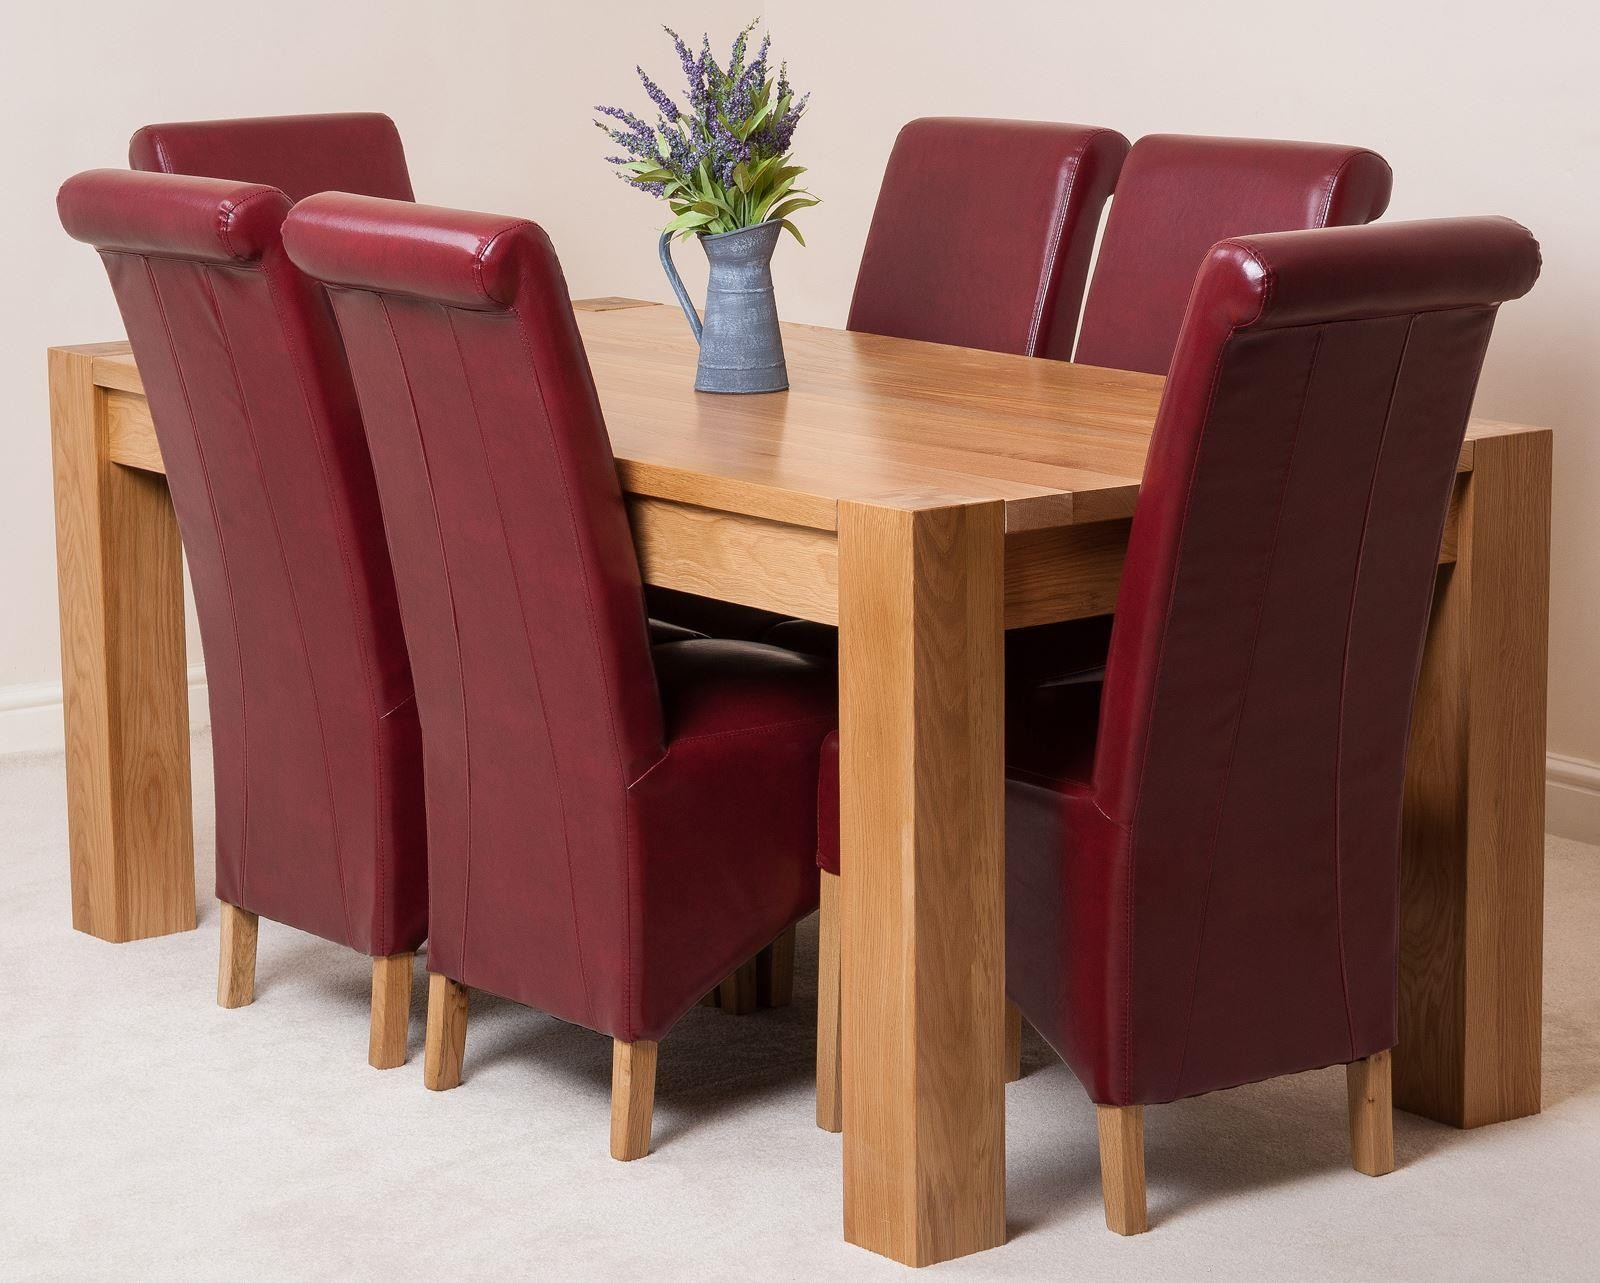 Kuba Oak Dining Table With 6 Brown Montana Dining Chairs